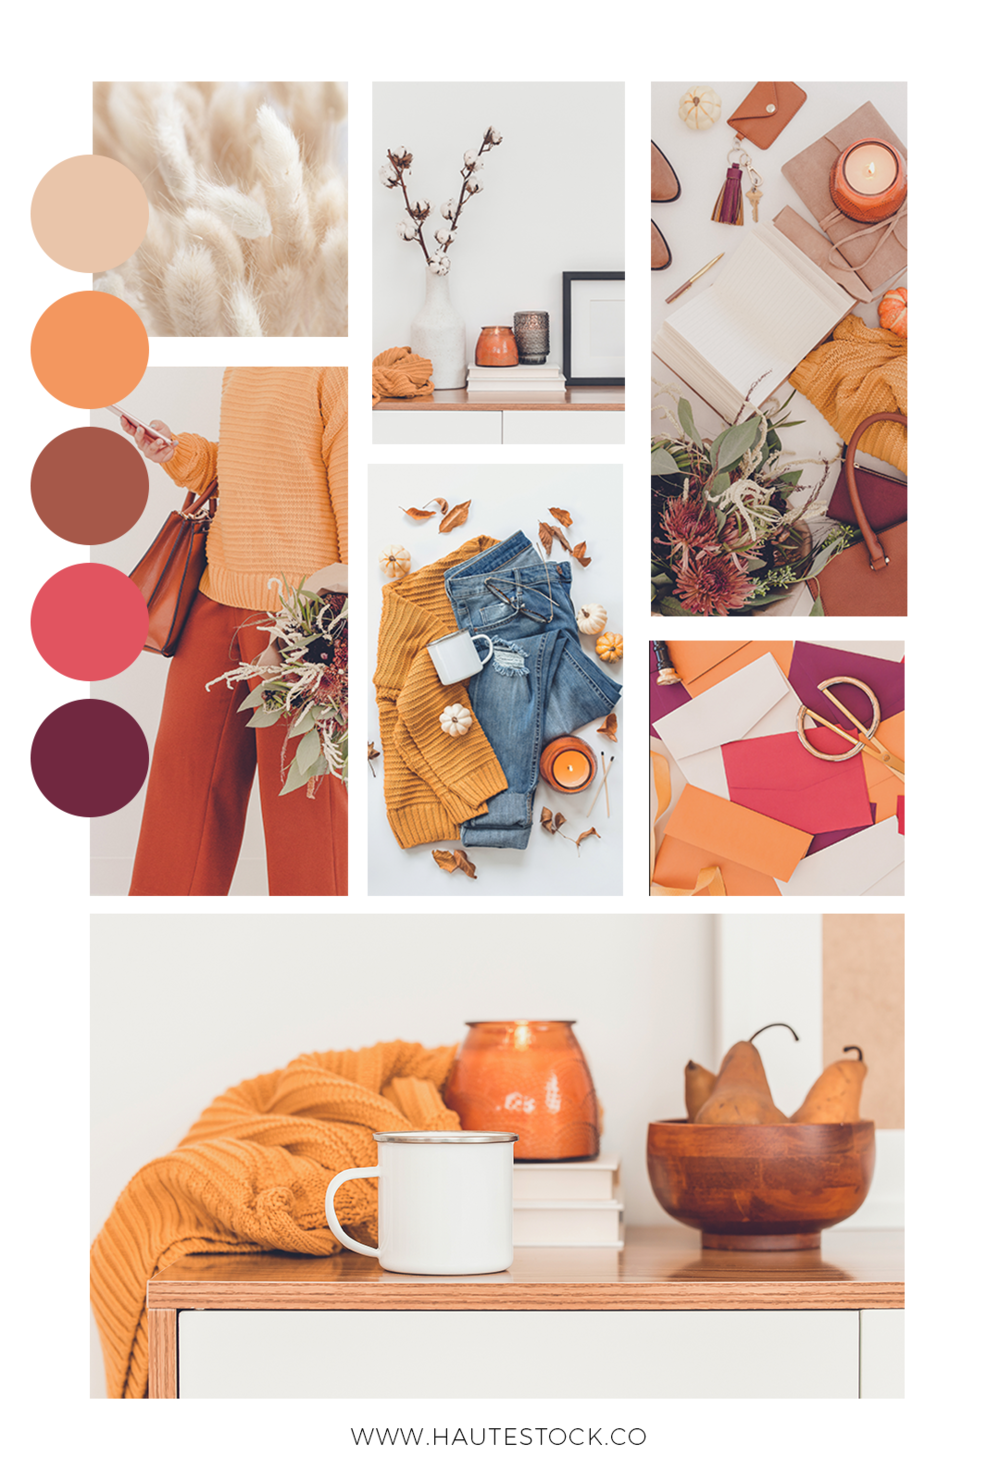 These modern autumn stock photos from Haute Stock are a modern take on a traditional color palette. We've taken orange and brown and paired them with neutral tan, beige and burgundy for an interesting update to Fall styled stock photography. Click to view more images from this collection!